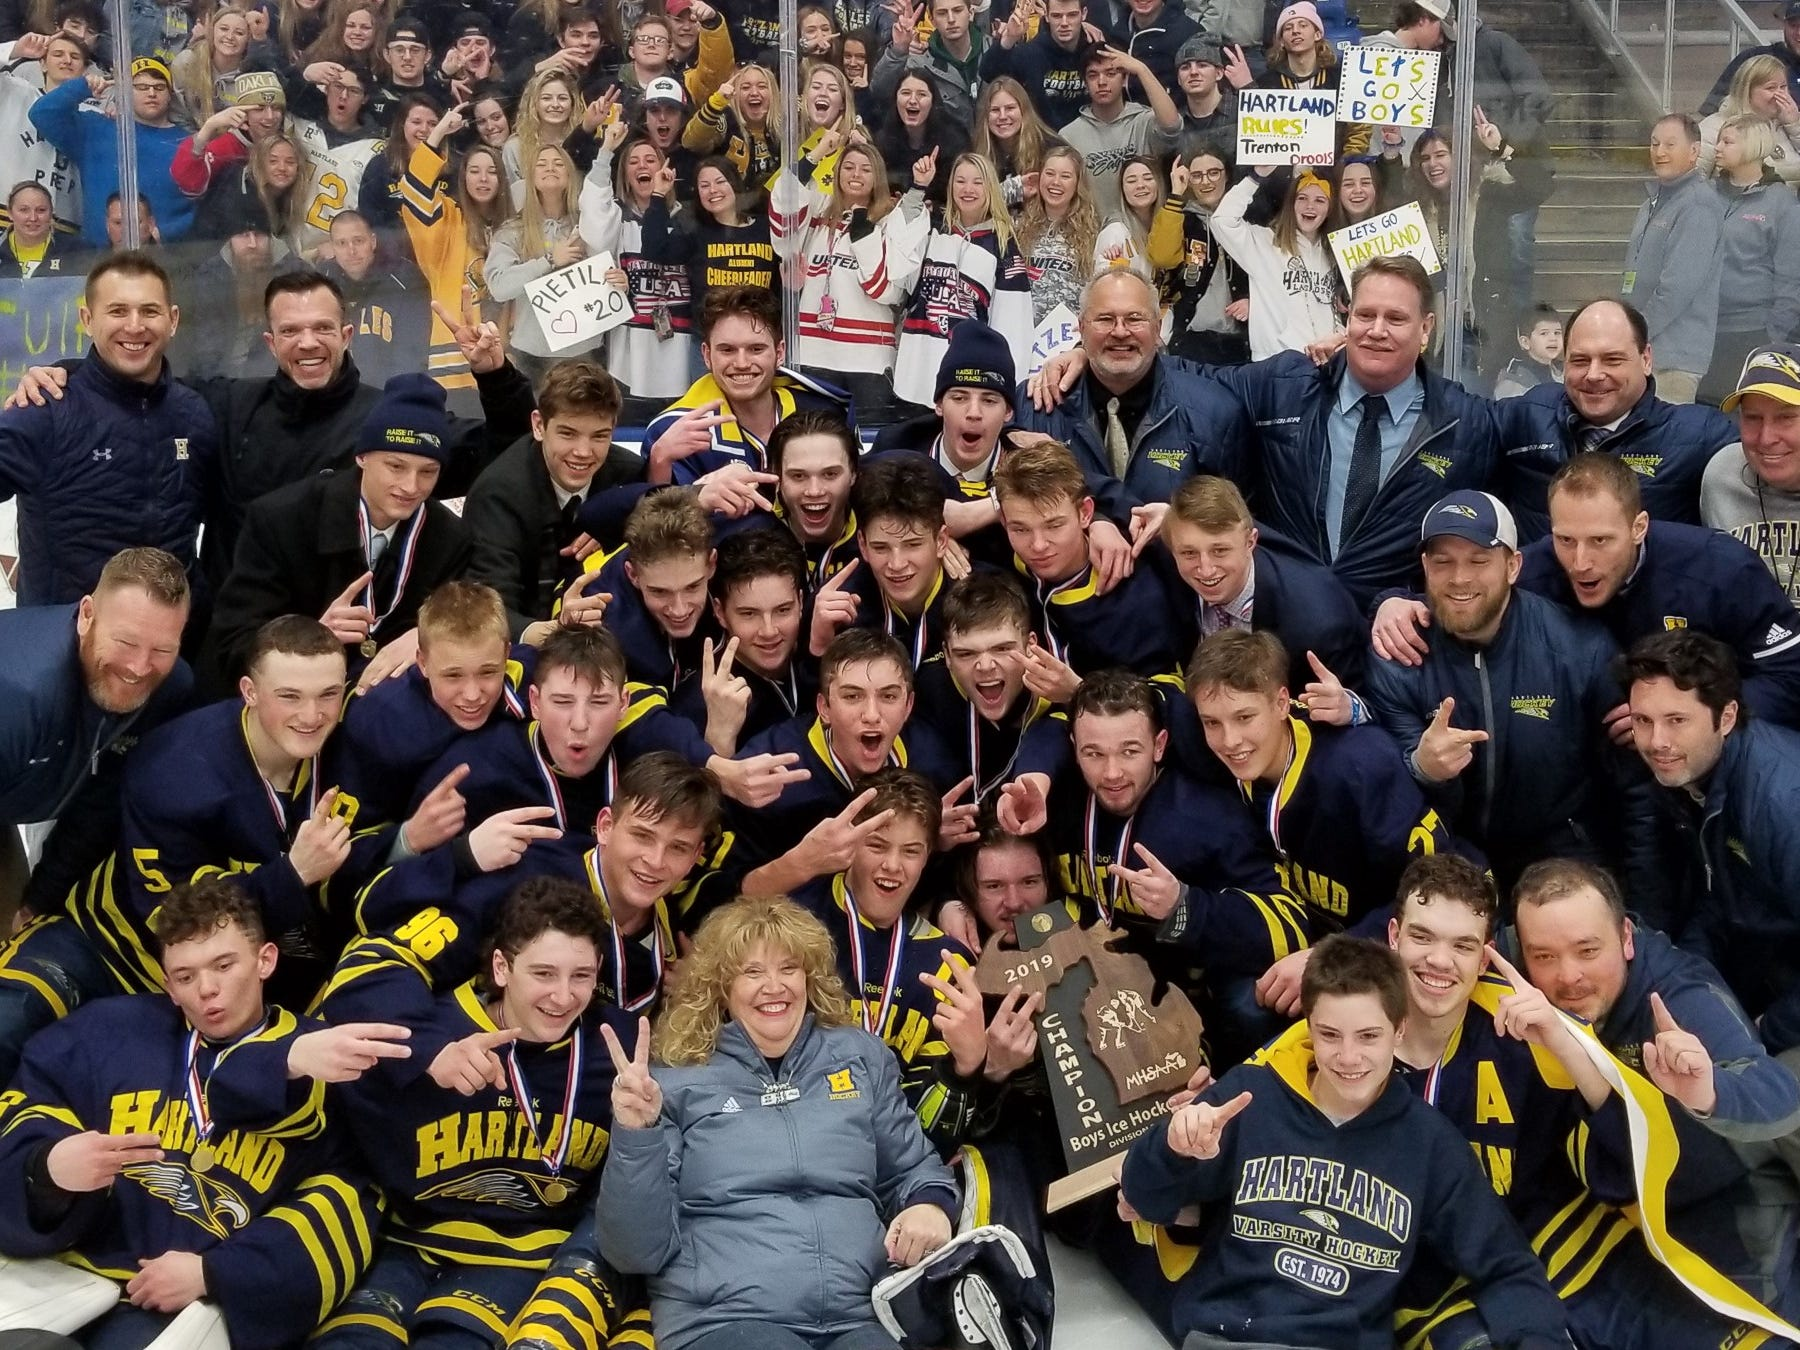 The Hartland Eagles are the 2019 Division 2 MHSAA Hockey Champions after a 4-0 victory over Trenton Saturday March 9 2019 at USA Hockey Arena in Plymouth.